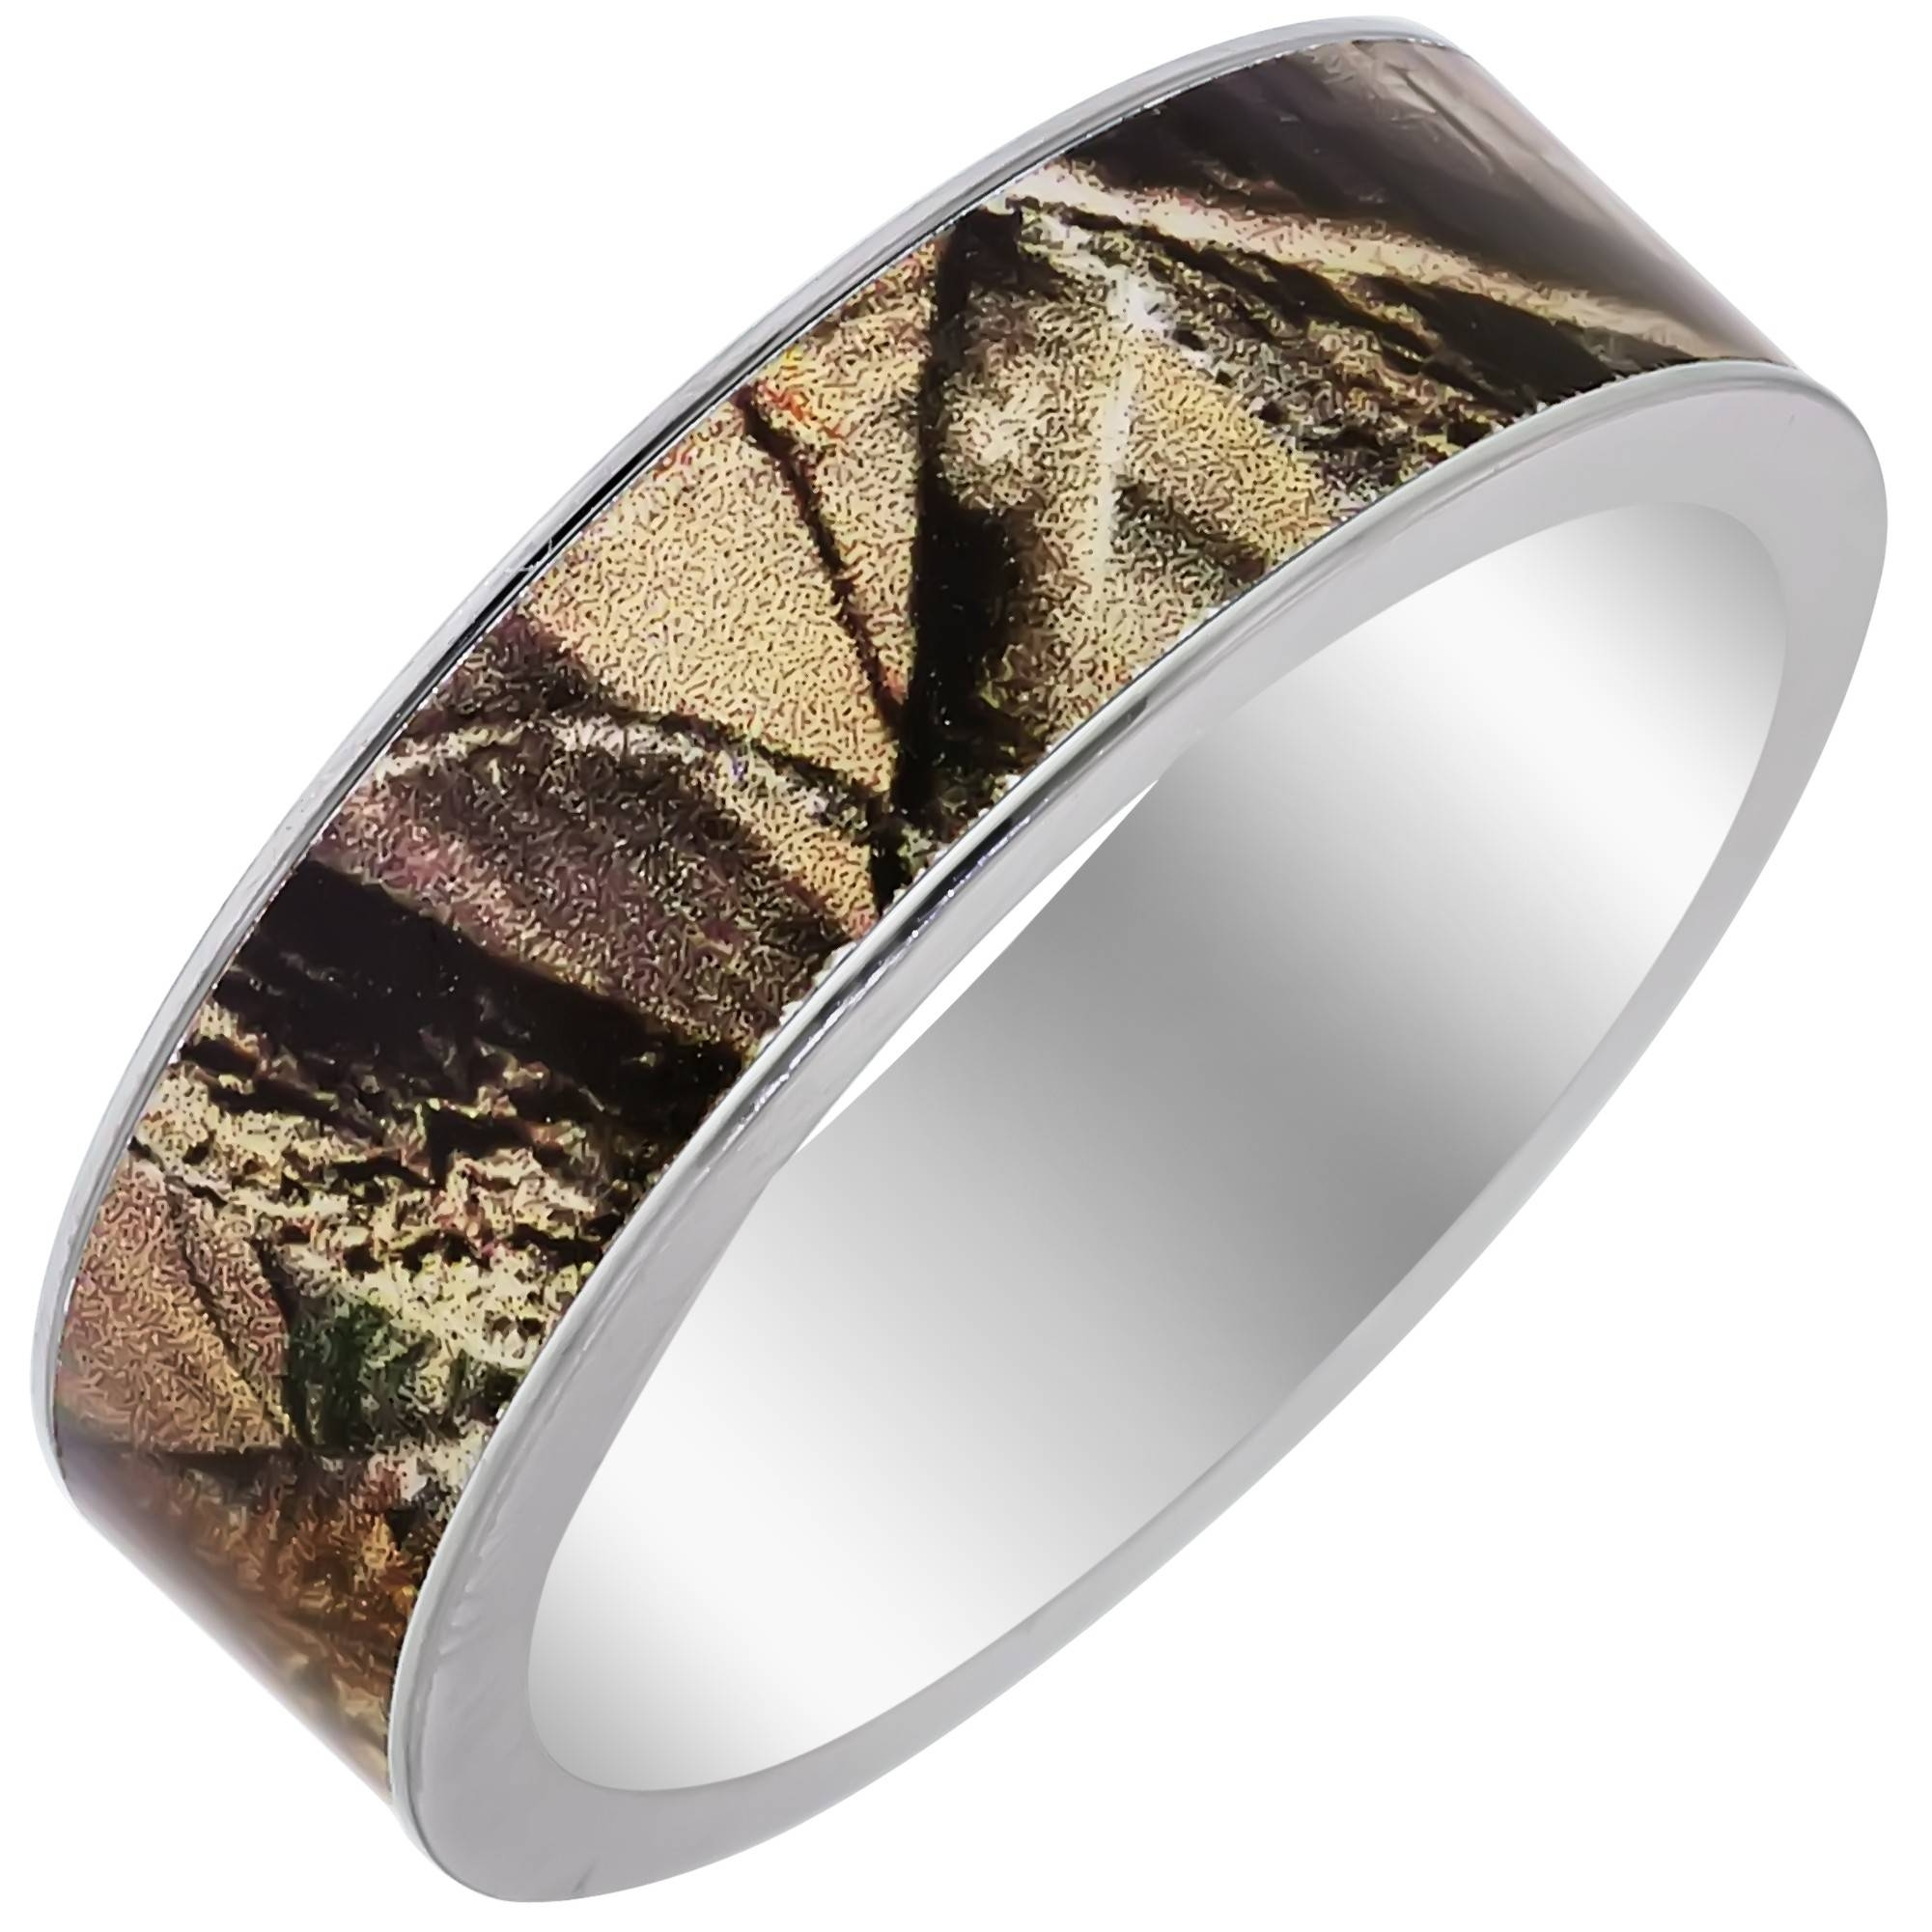 Mens Camouflage Wedding Band In Titanium (7Mm) Intended For Camo Wedding Bands (Gallery 1 of 15)